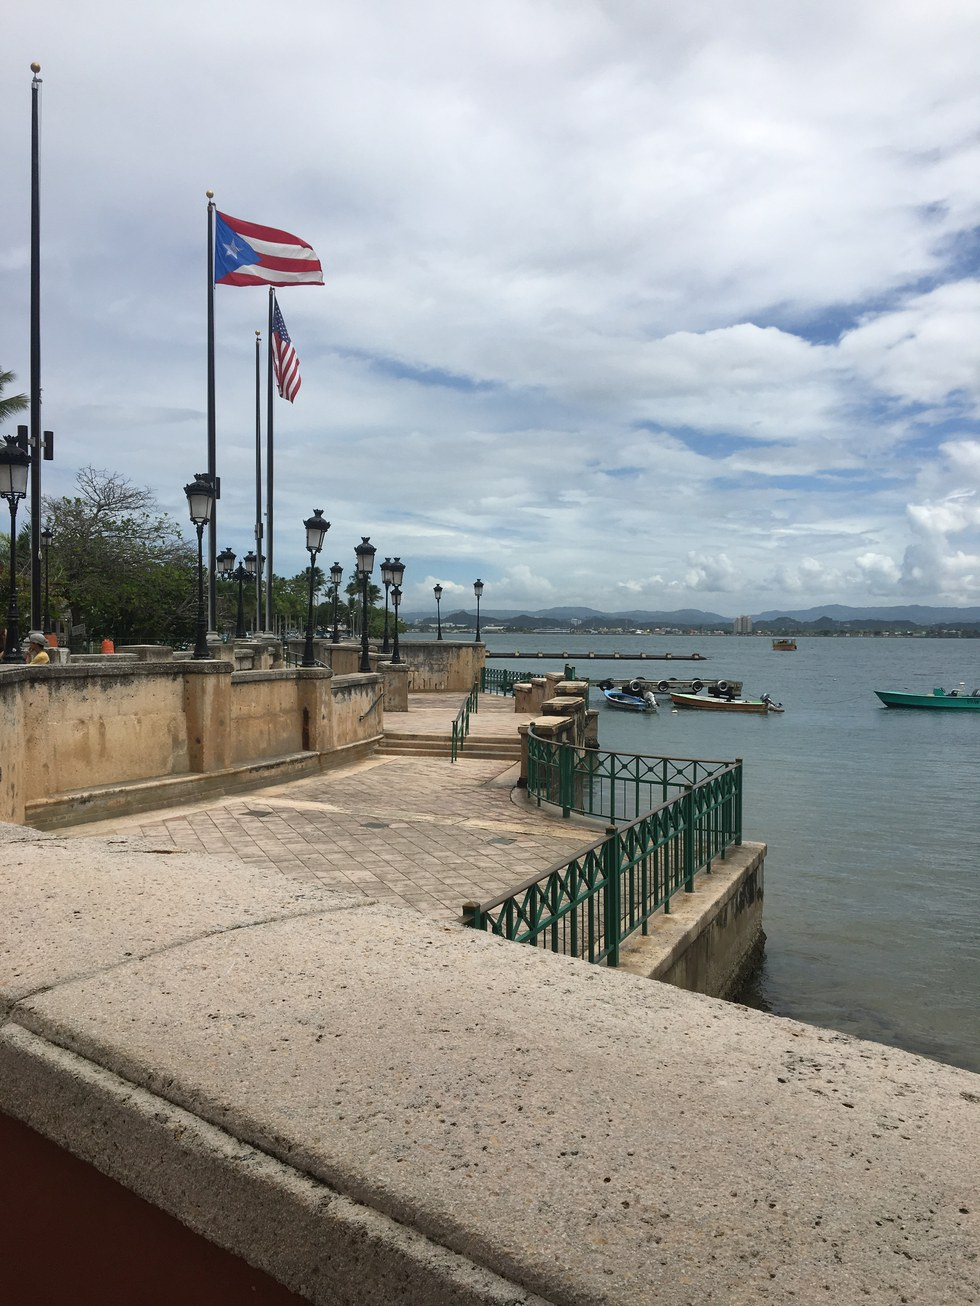 If Youre A Big History Buff Theres Lot To See And Do While In San Juan Puerto Rico Was Founded 1521 By Ponce De Leon Pictured Above